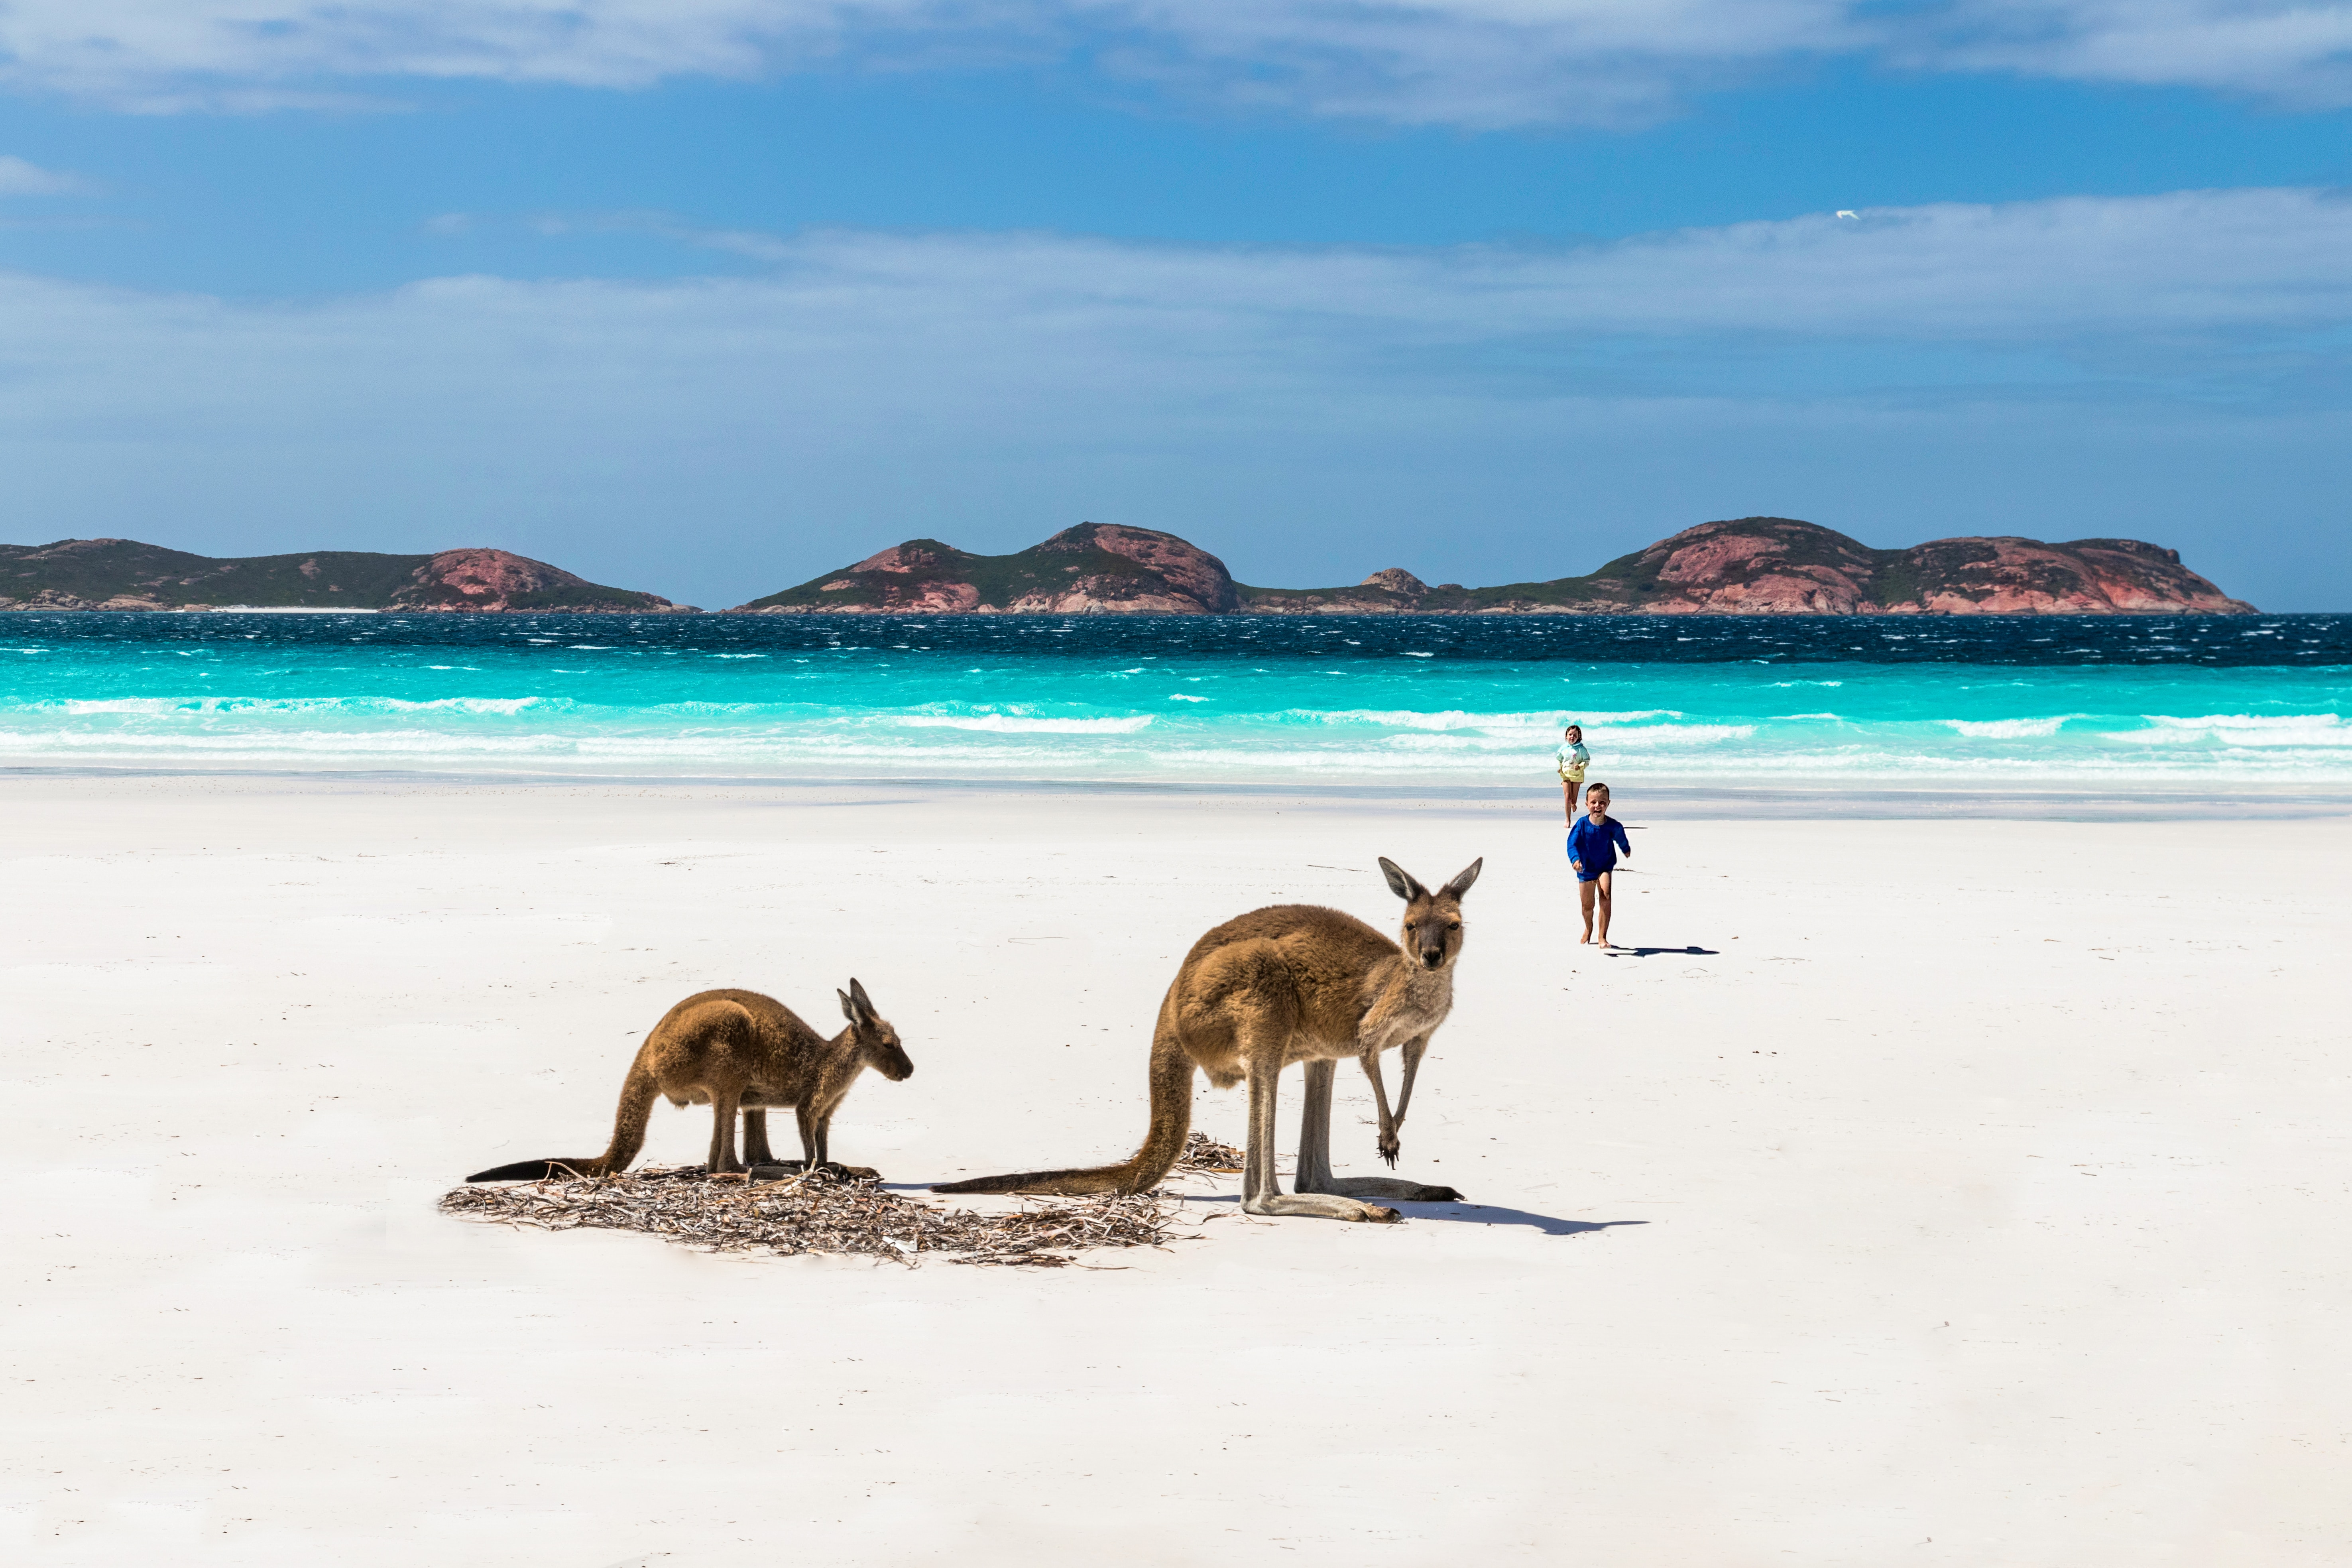 Two kangaroos and two small children are on a white sand beach with turquoise water and mountains in the background.